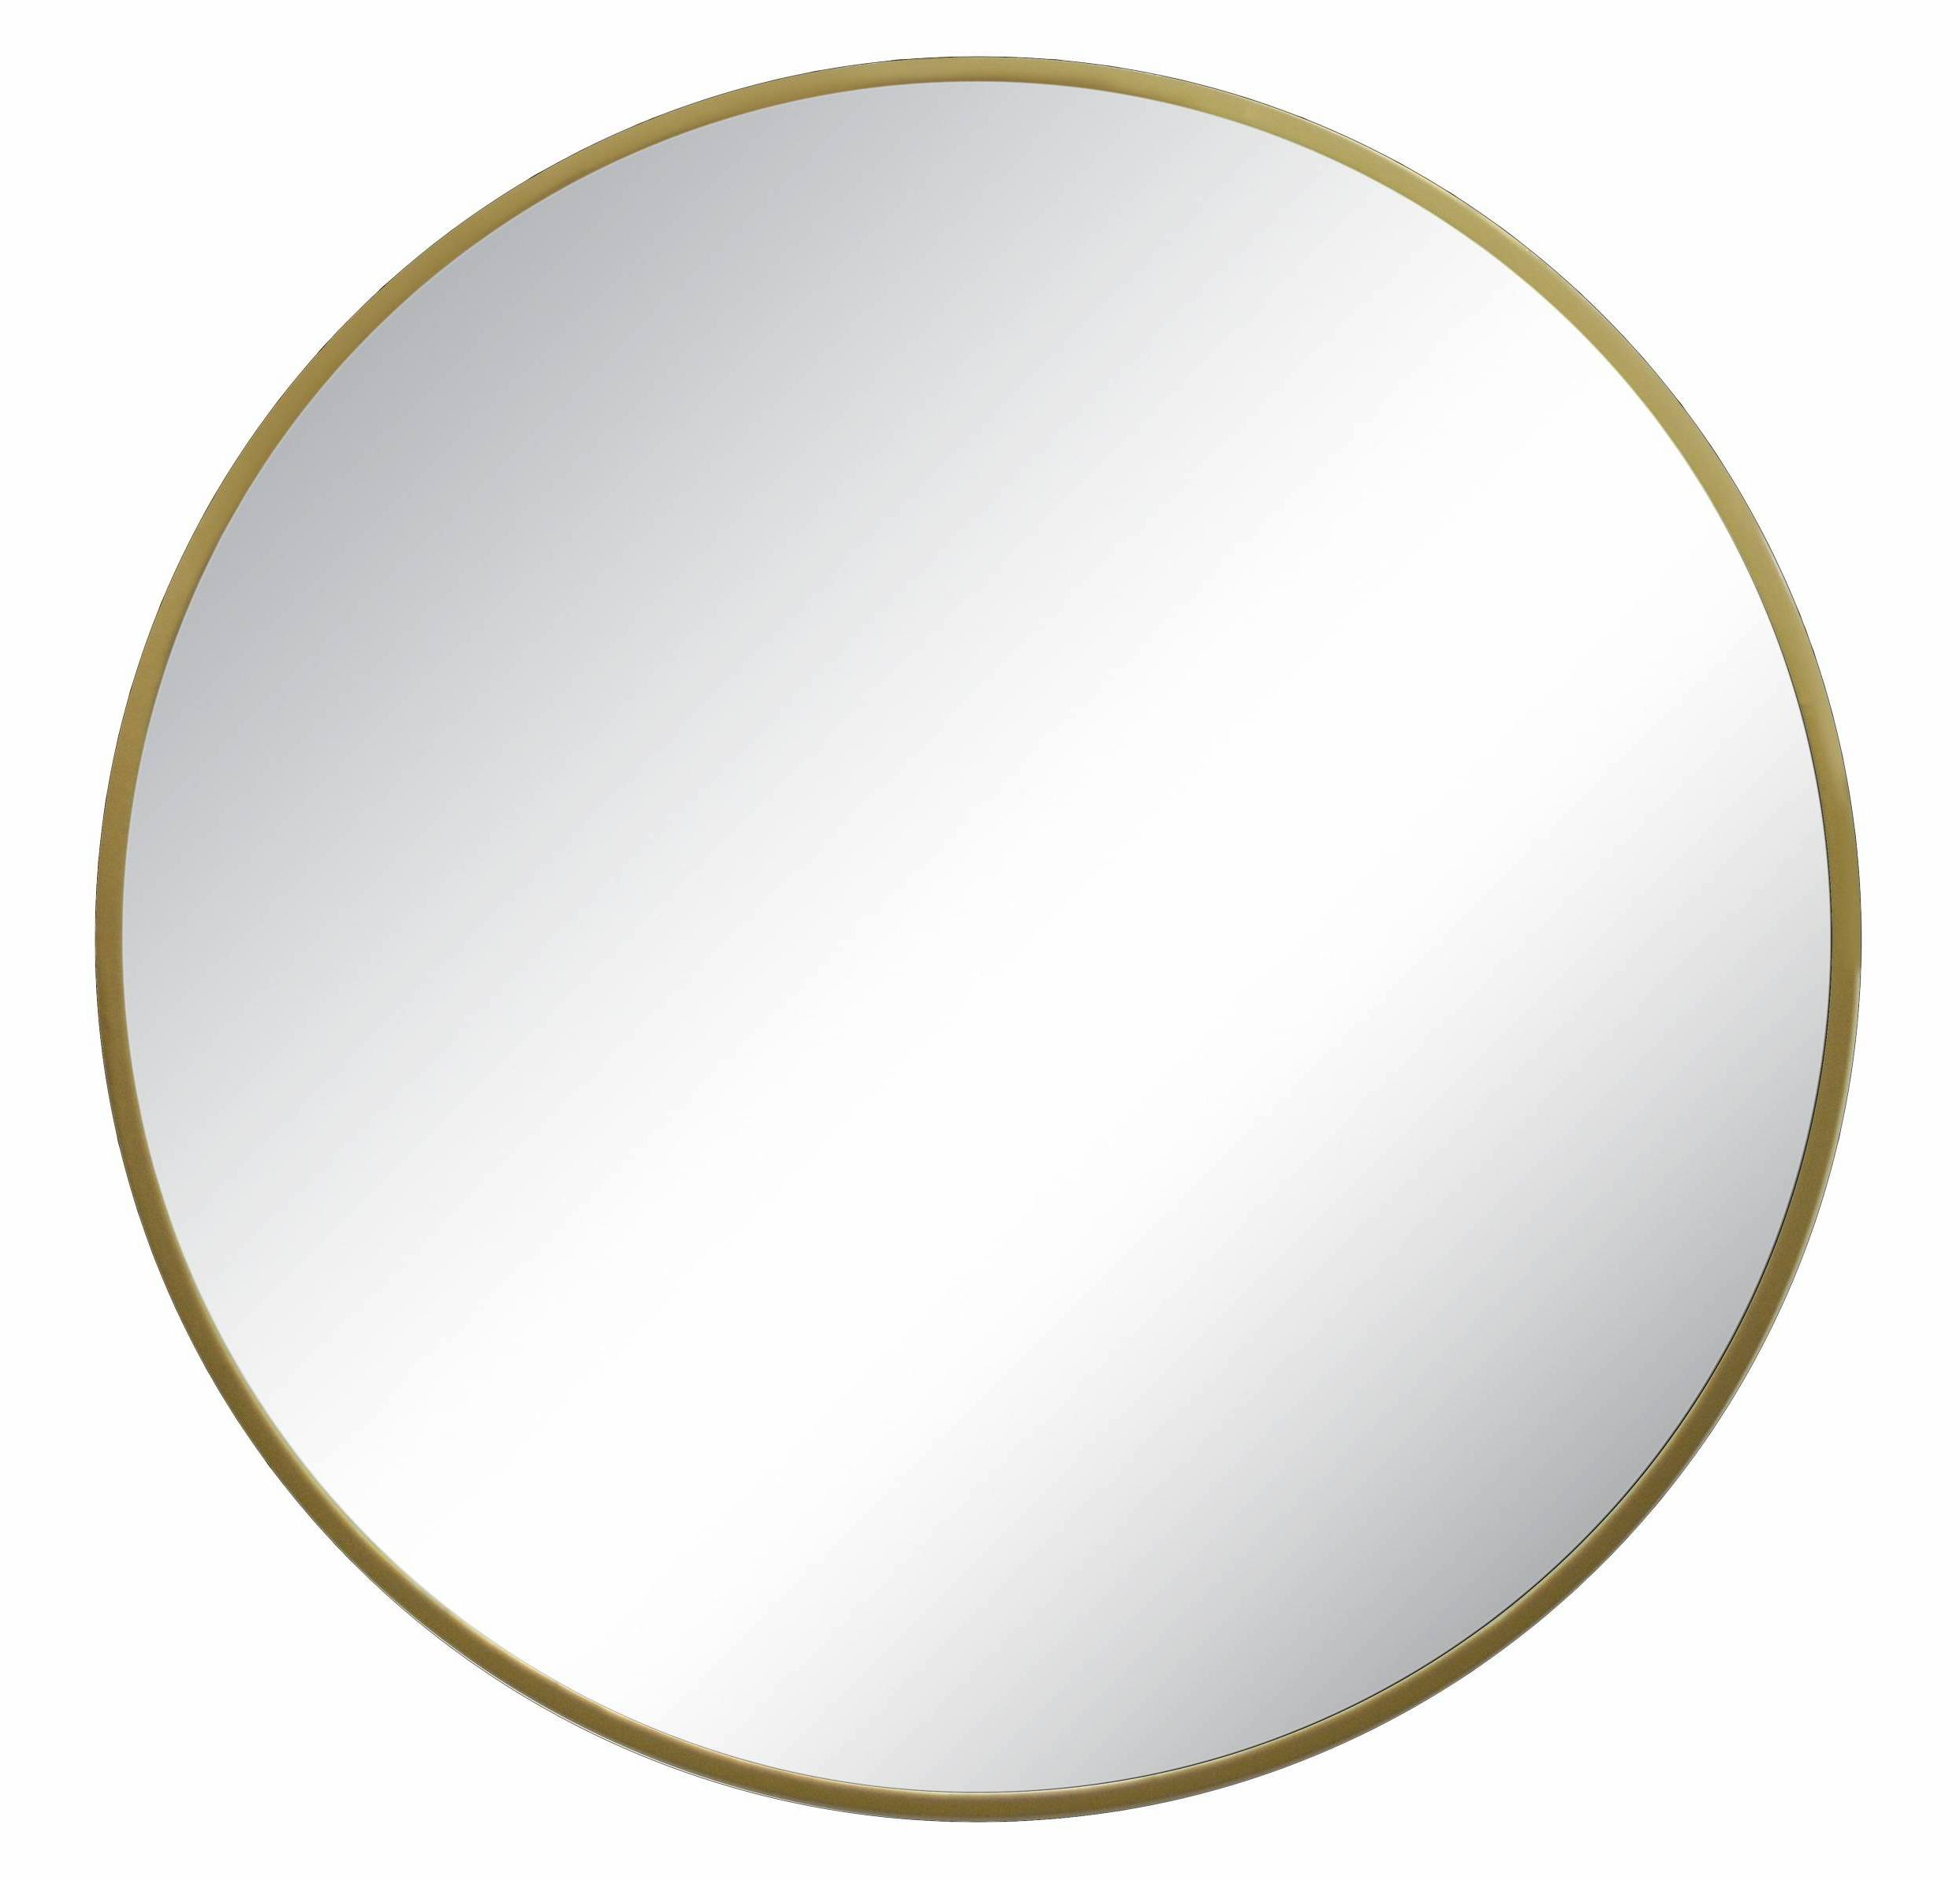 Target Threshold Round Brass Mirror.jpeg